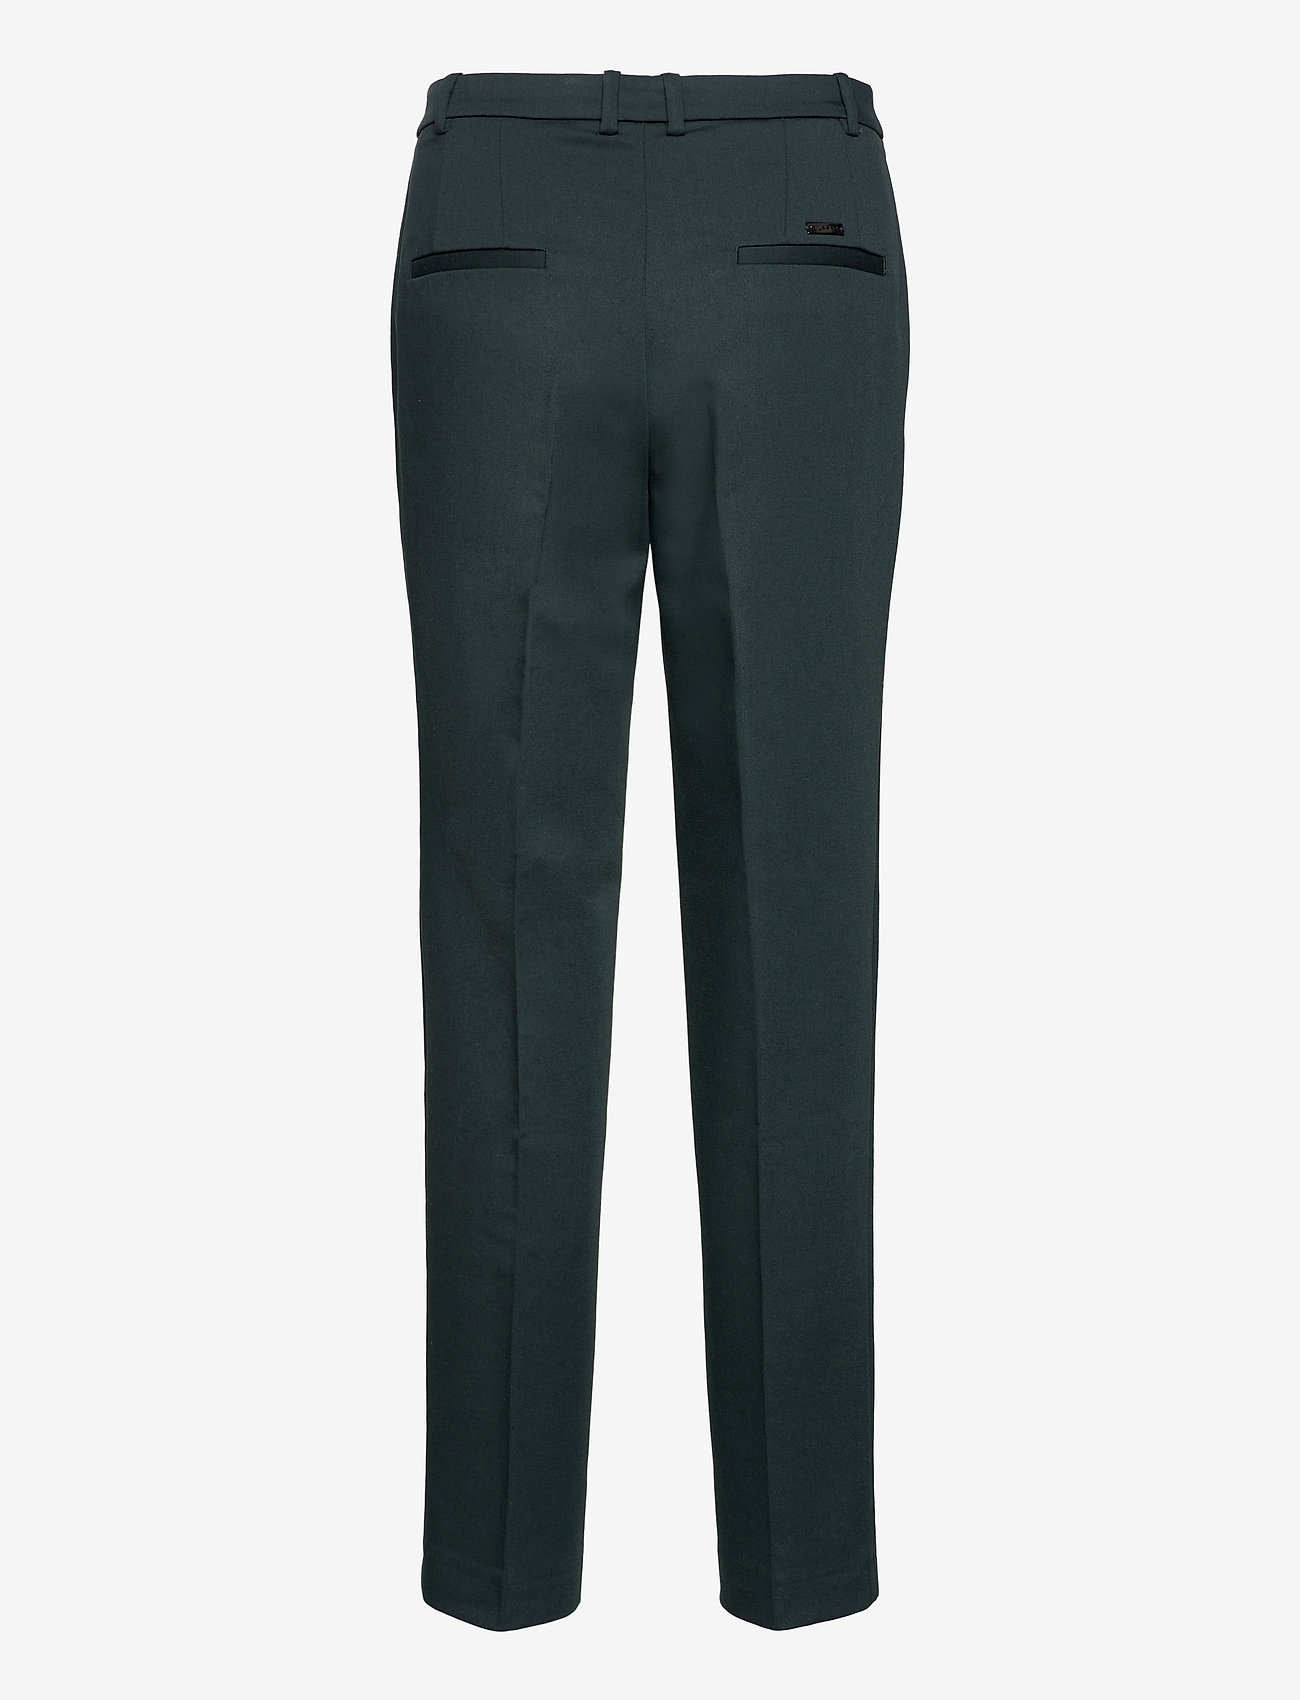 Esprit Collection - Pants woven - chinos - dark teal green - 1